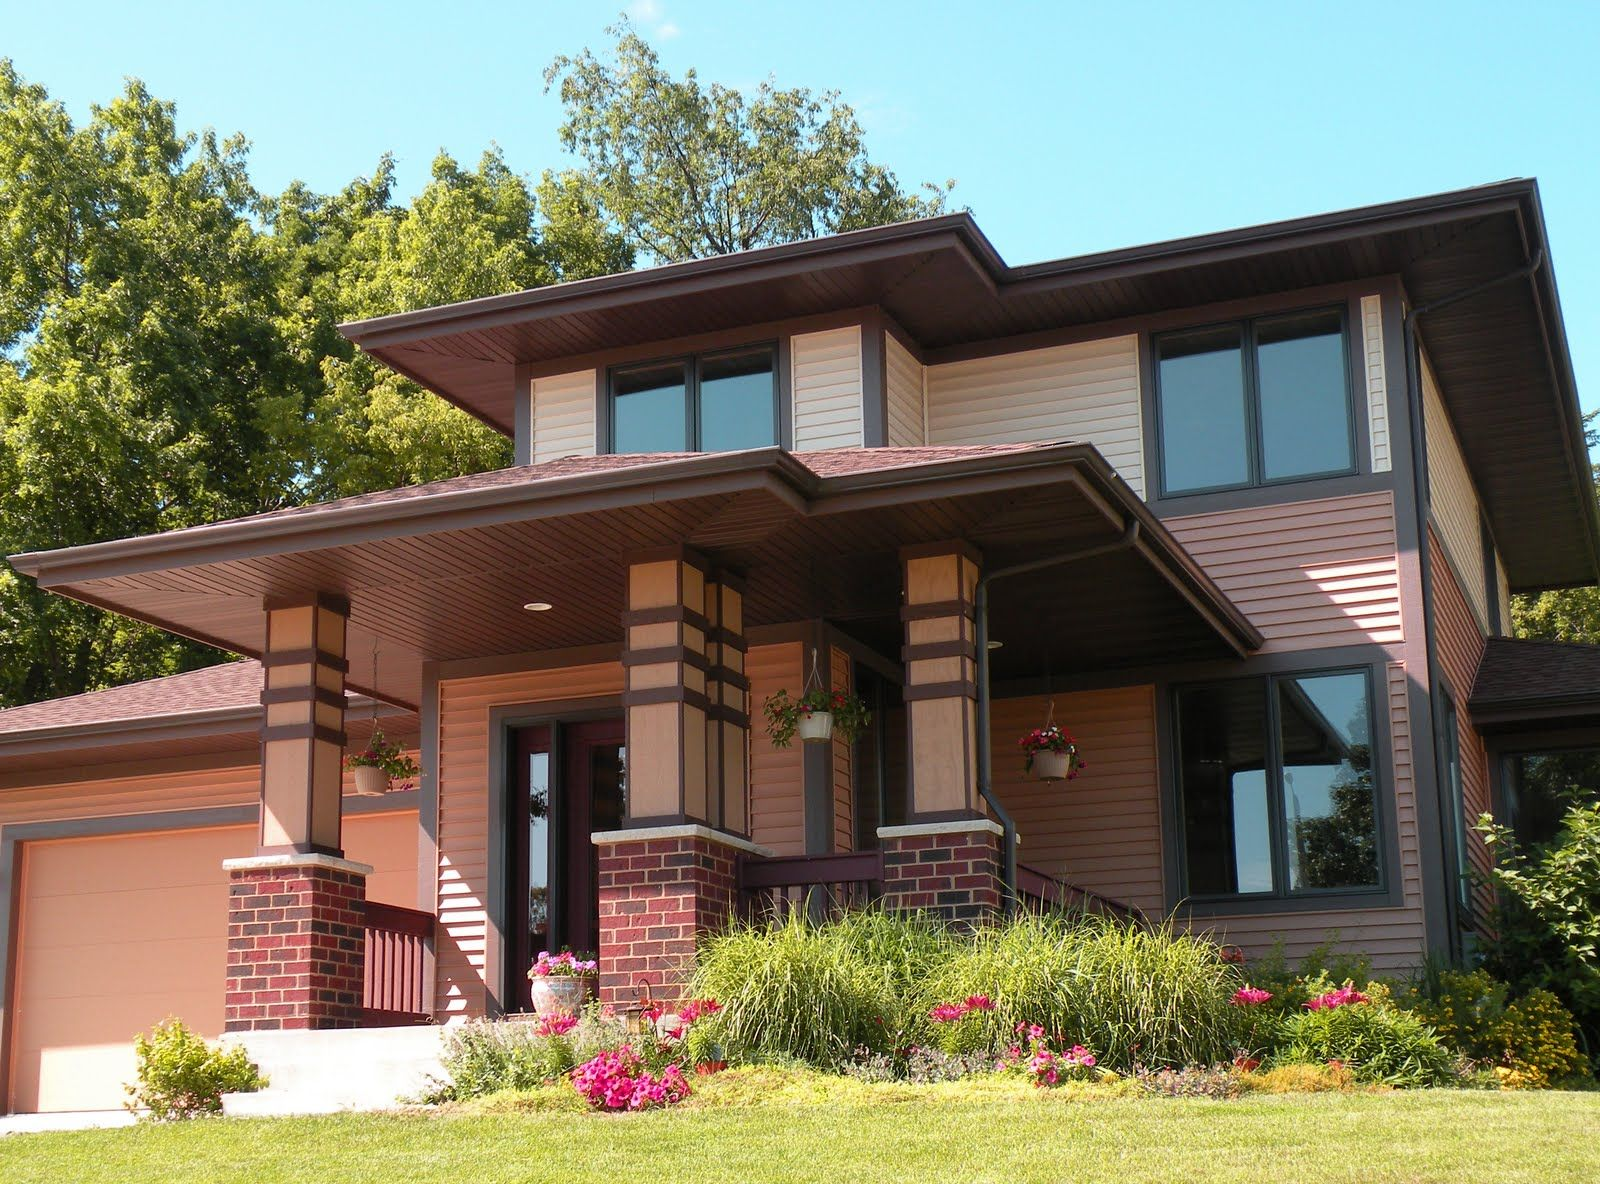 builders colonial mcmansion house styles - Google Search   Builder\'s ...